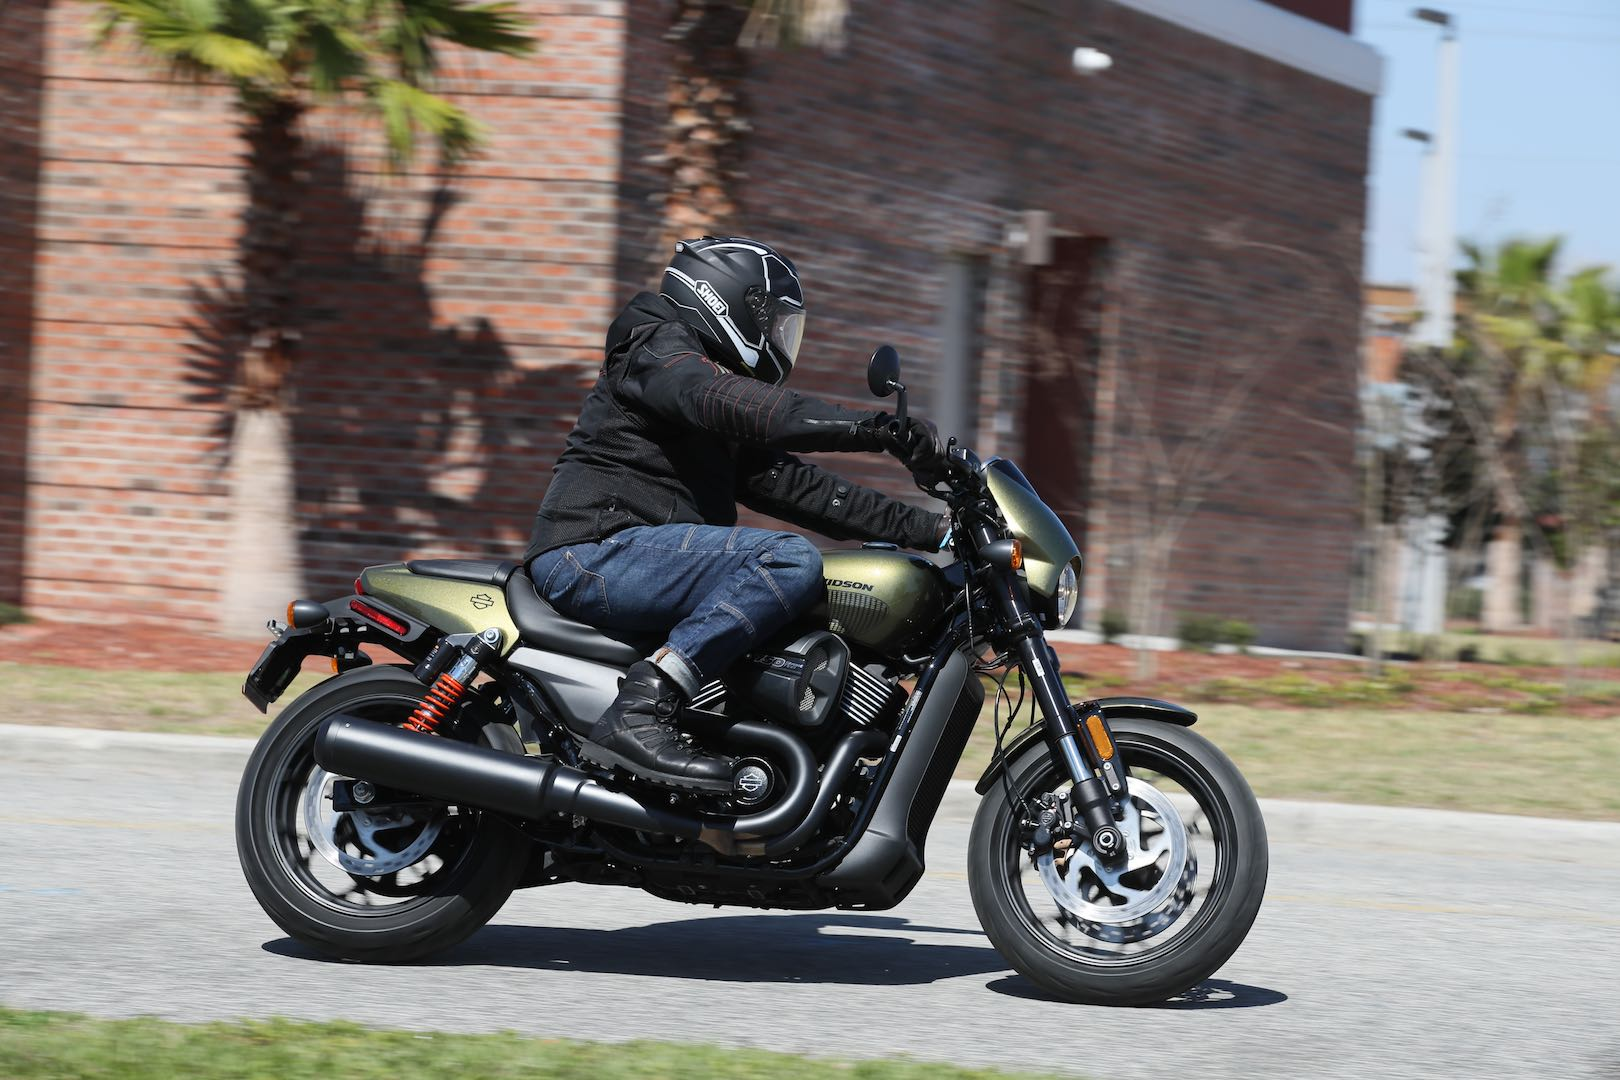 2017 Harley-Davidson Street Rod First Ride: Olive